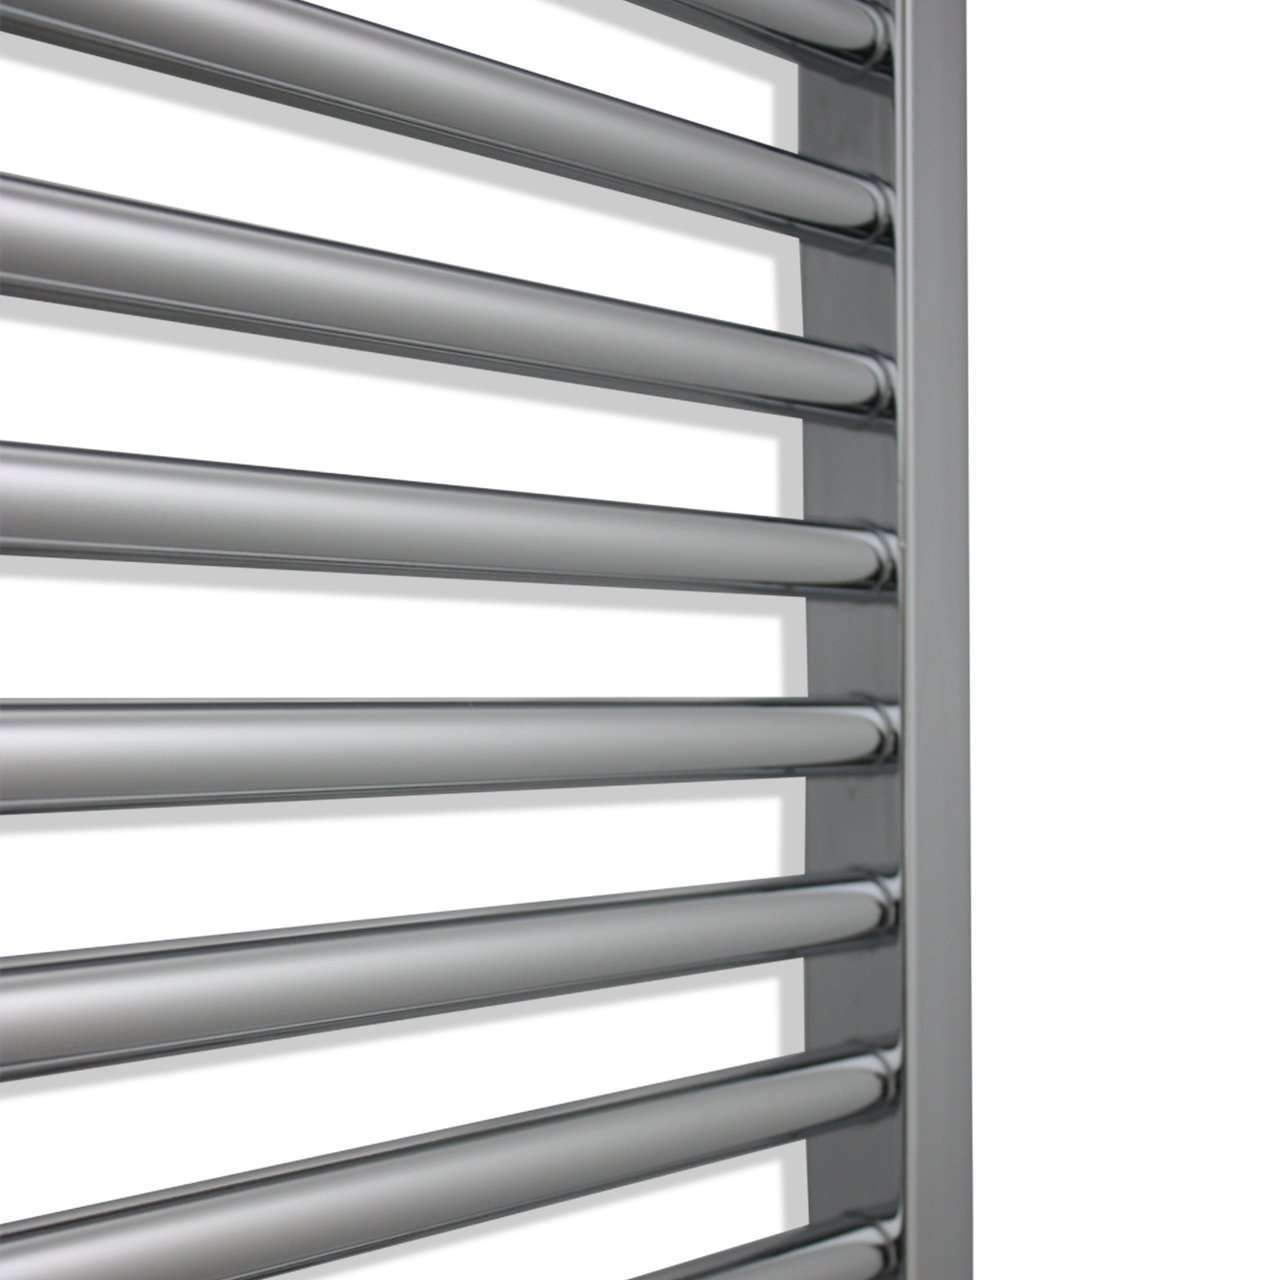 400mm Wide 600mm High Curved Chrome Heated Towel Rail Radiator HTR